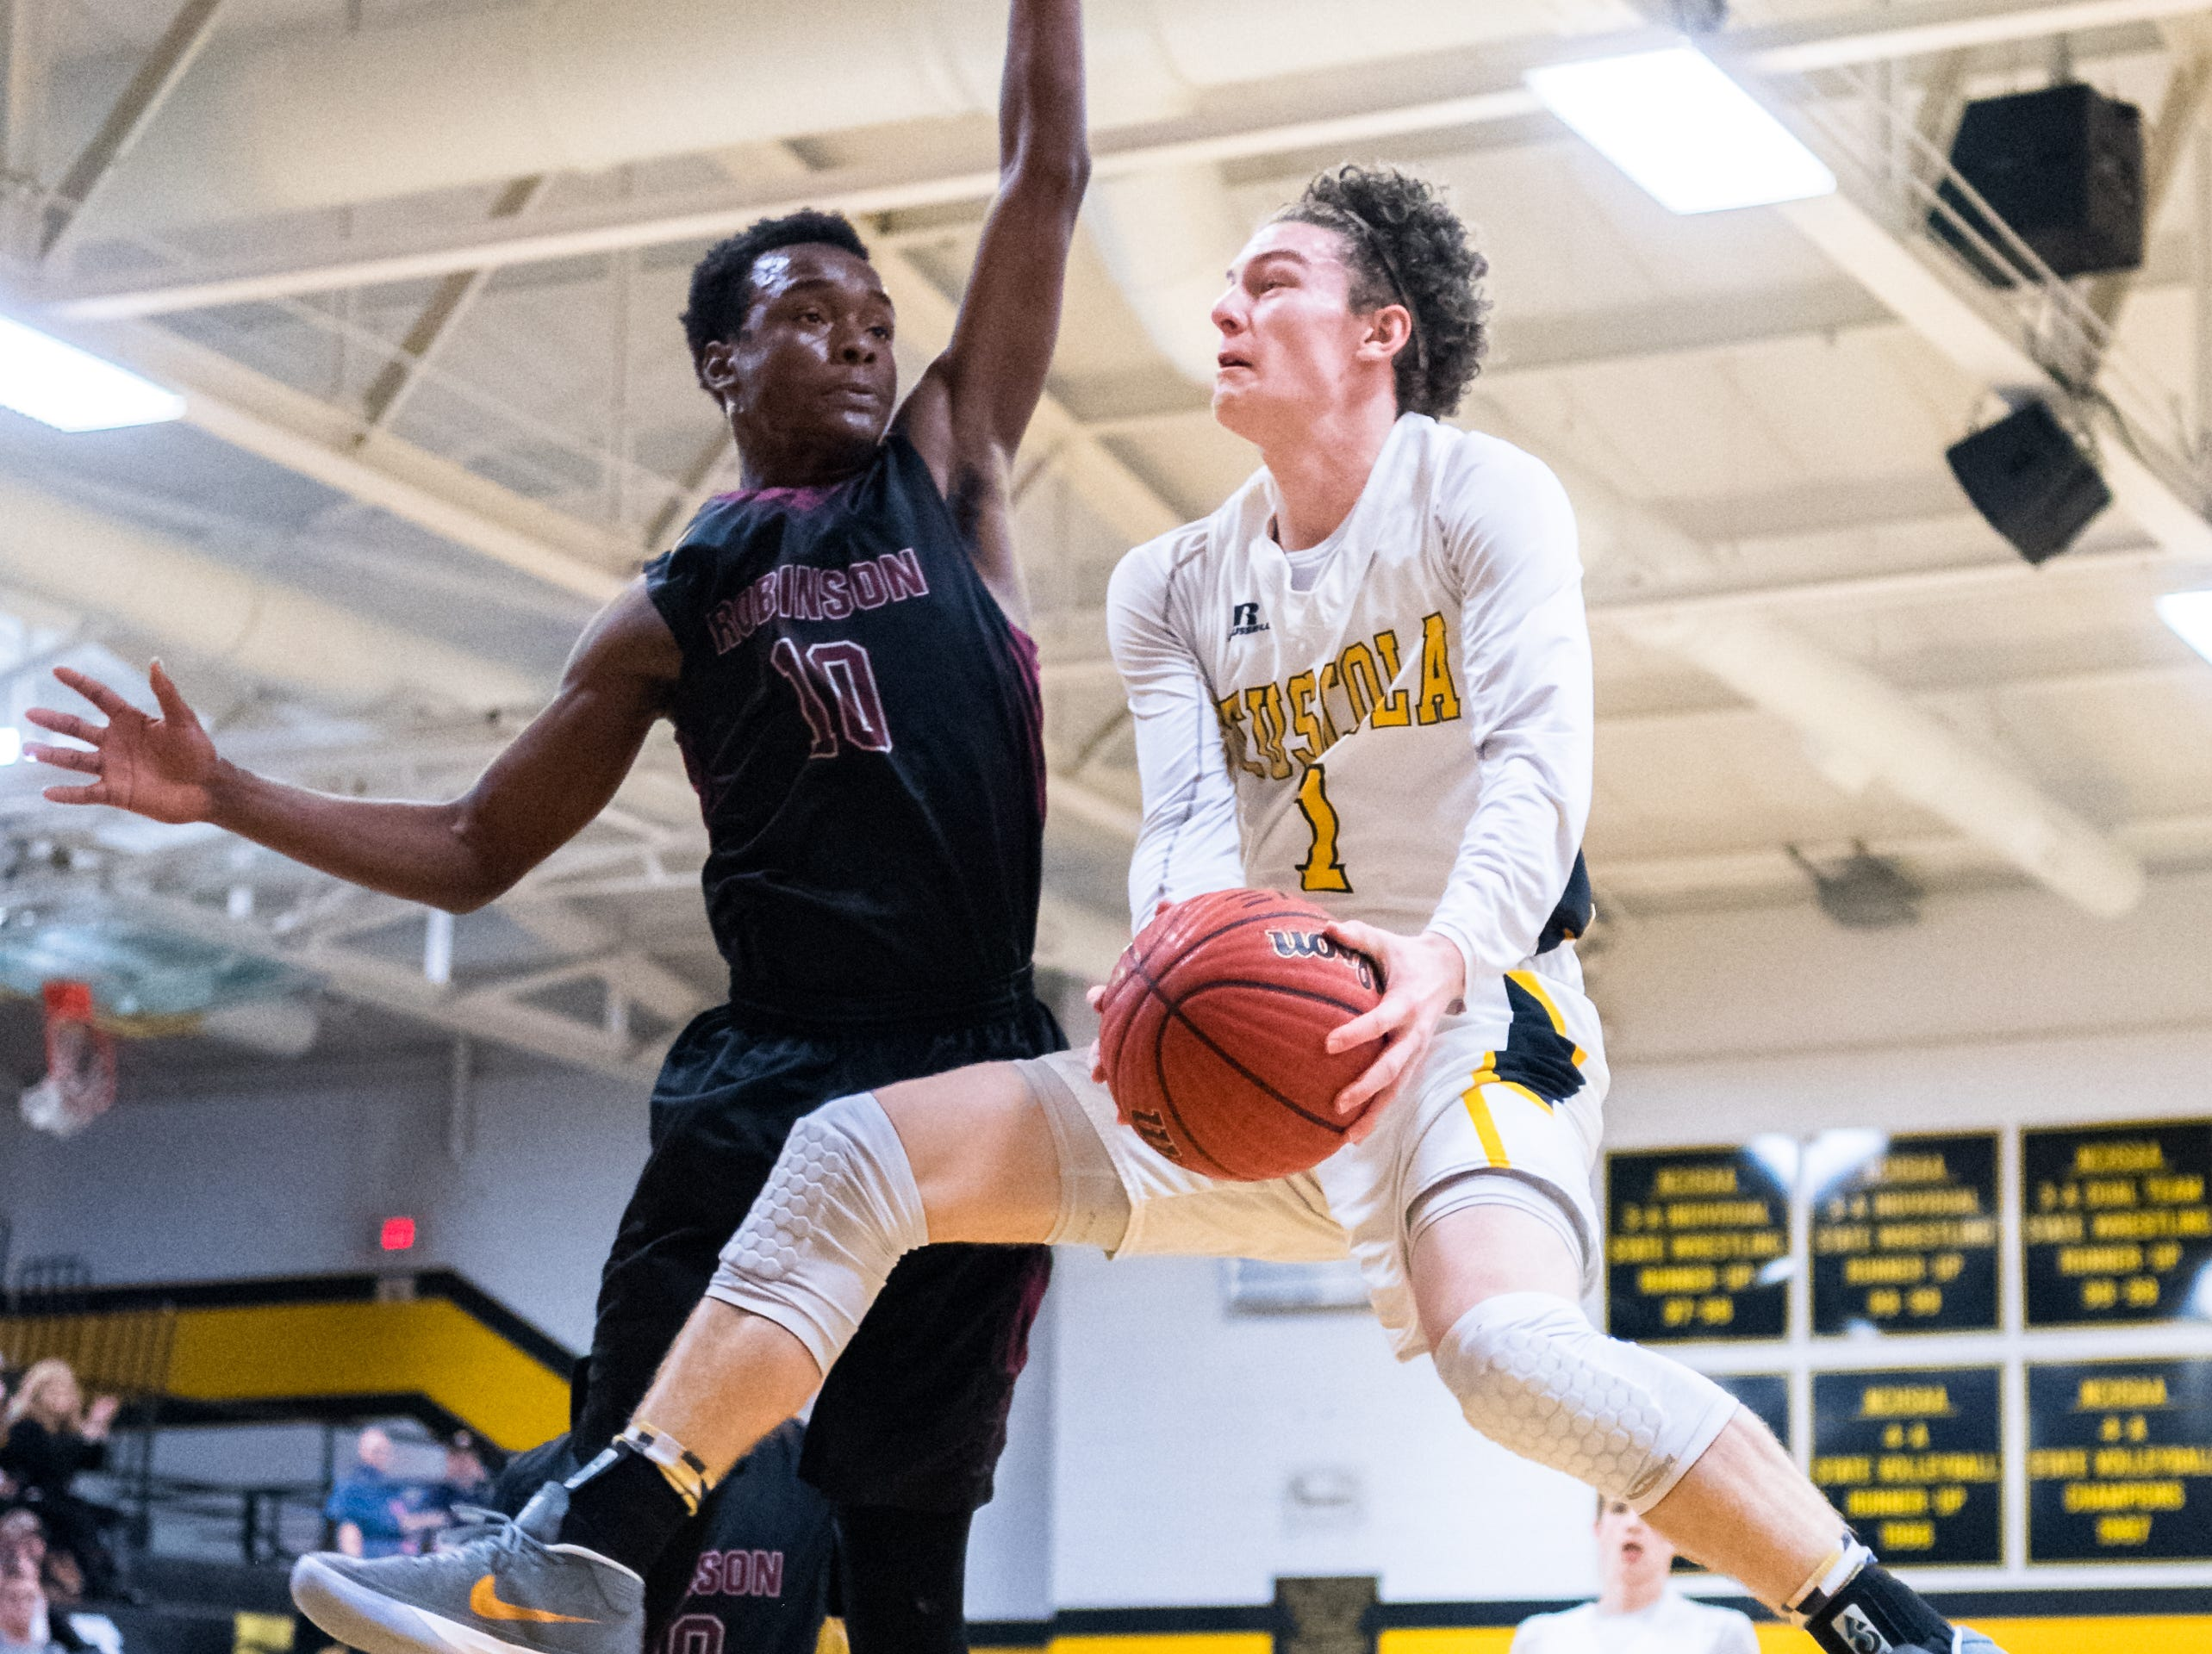 The Tuscola boys basketball team played Jay Robinson in the first round of playoffs losing 76-75, Tuesday, February 20, 2018.